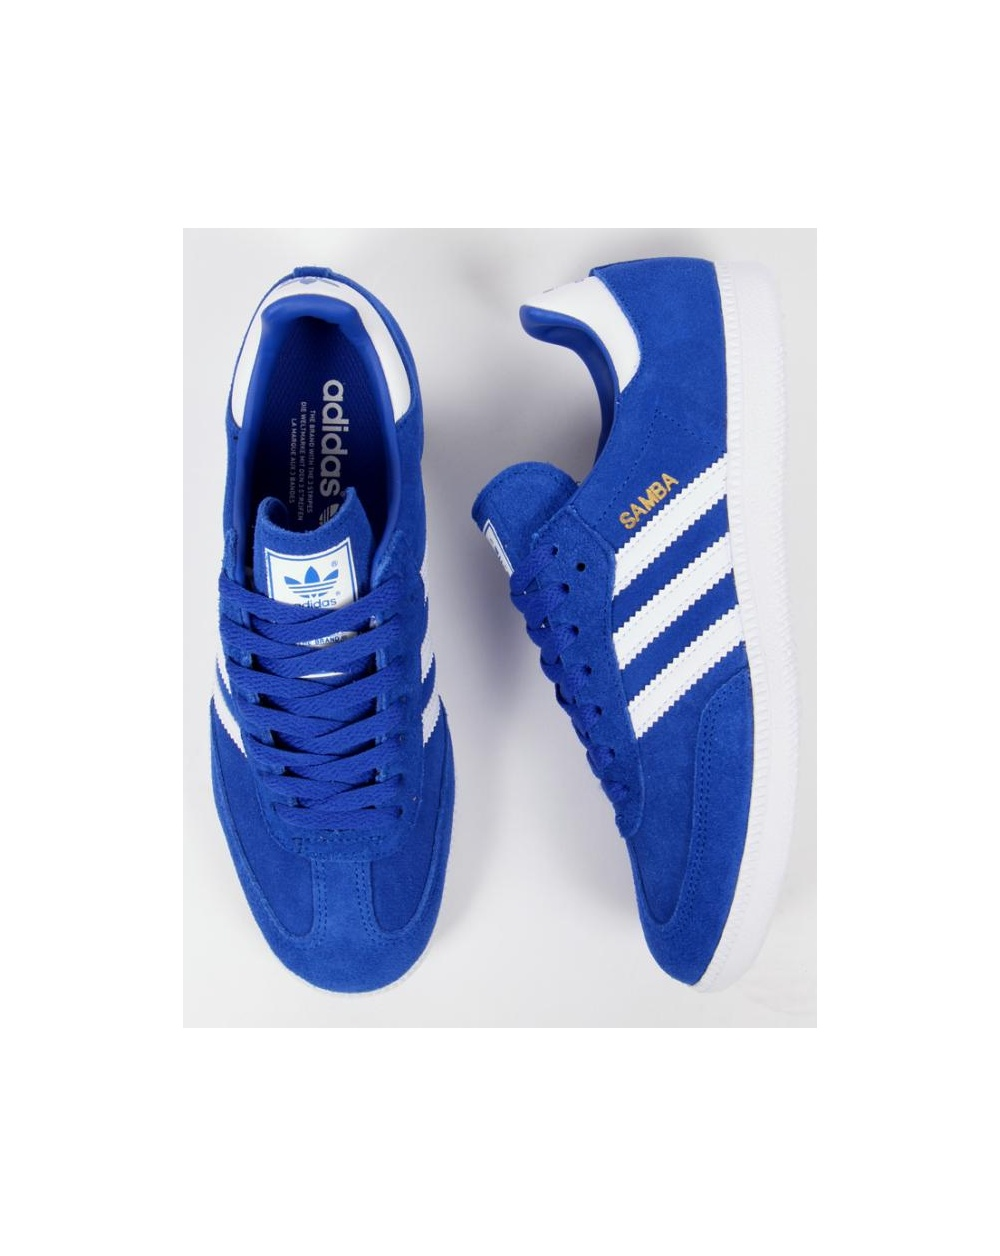 adidas samba blue white flag